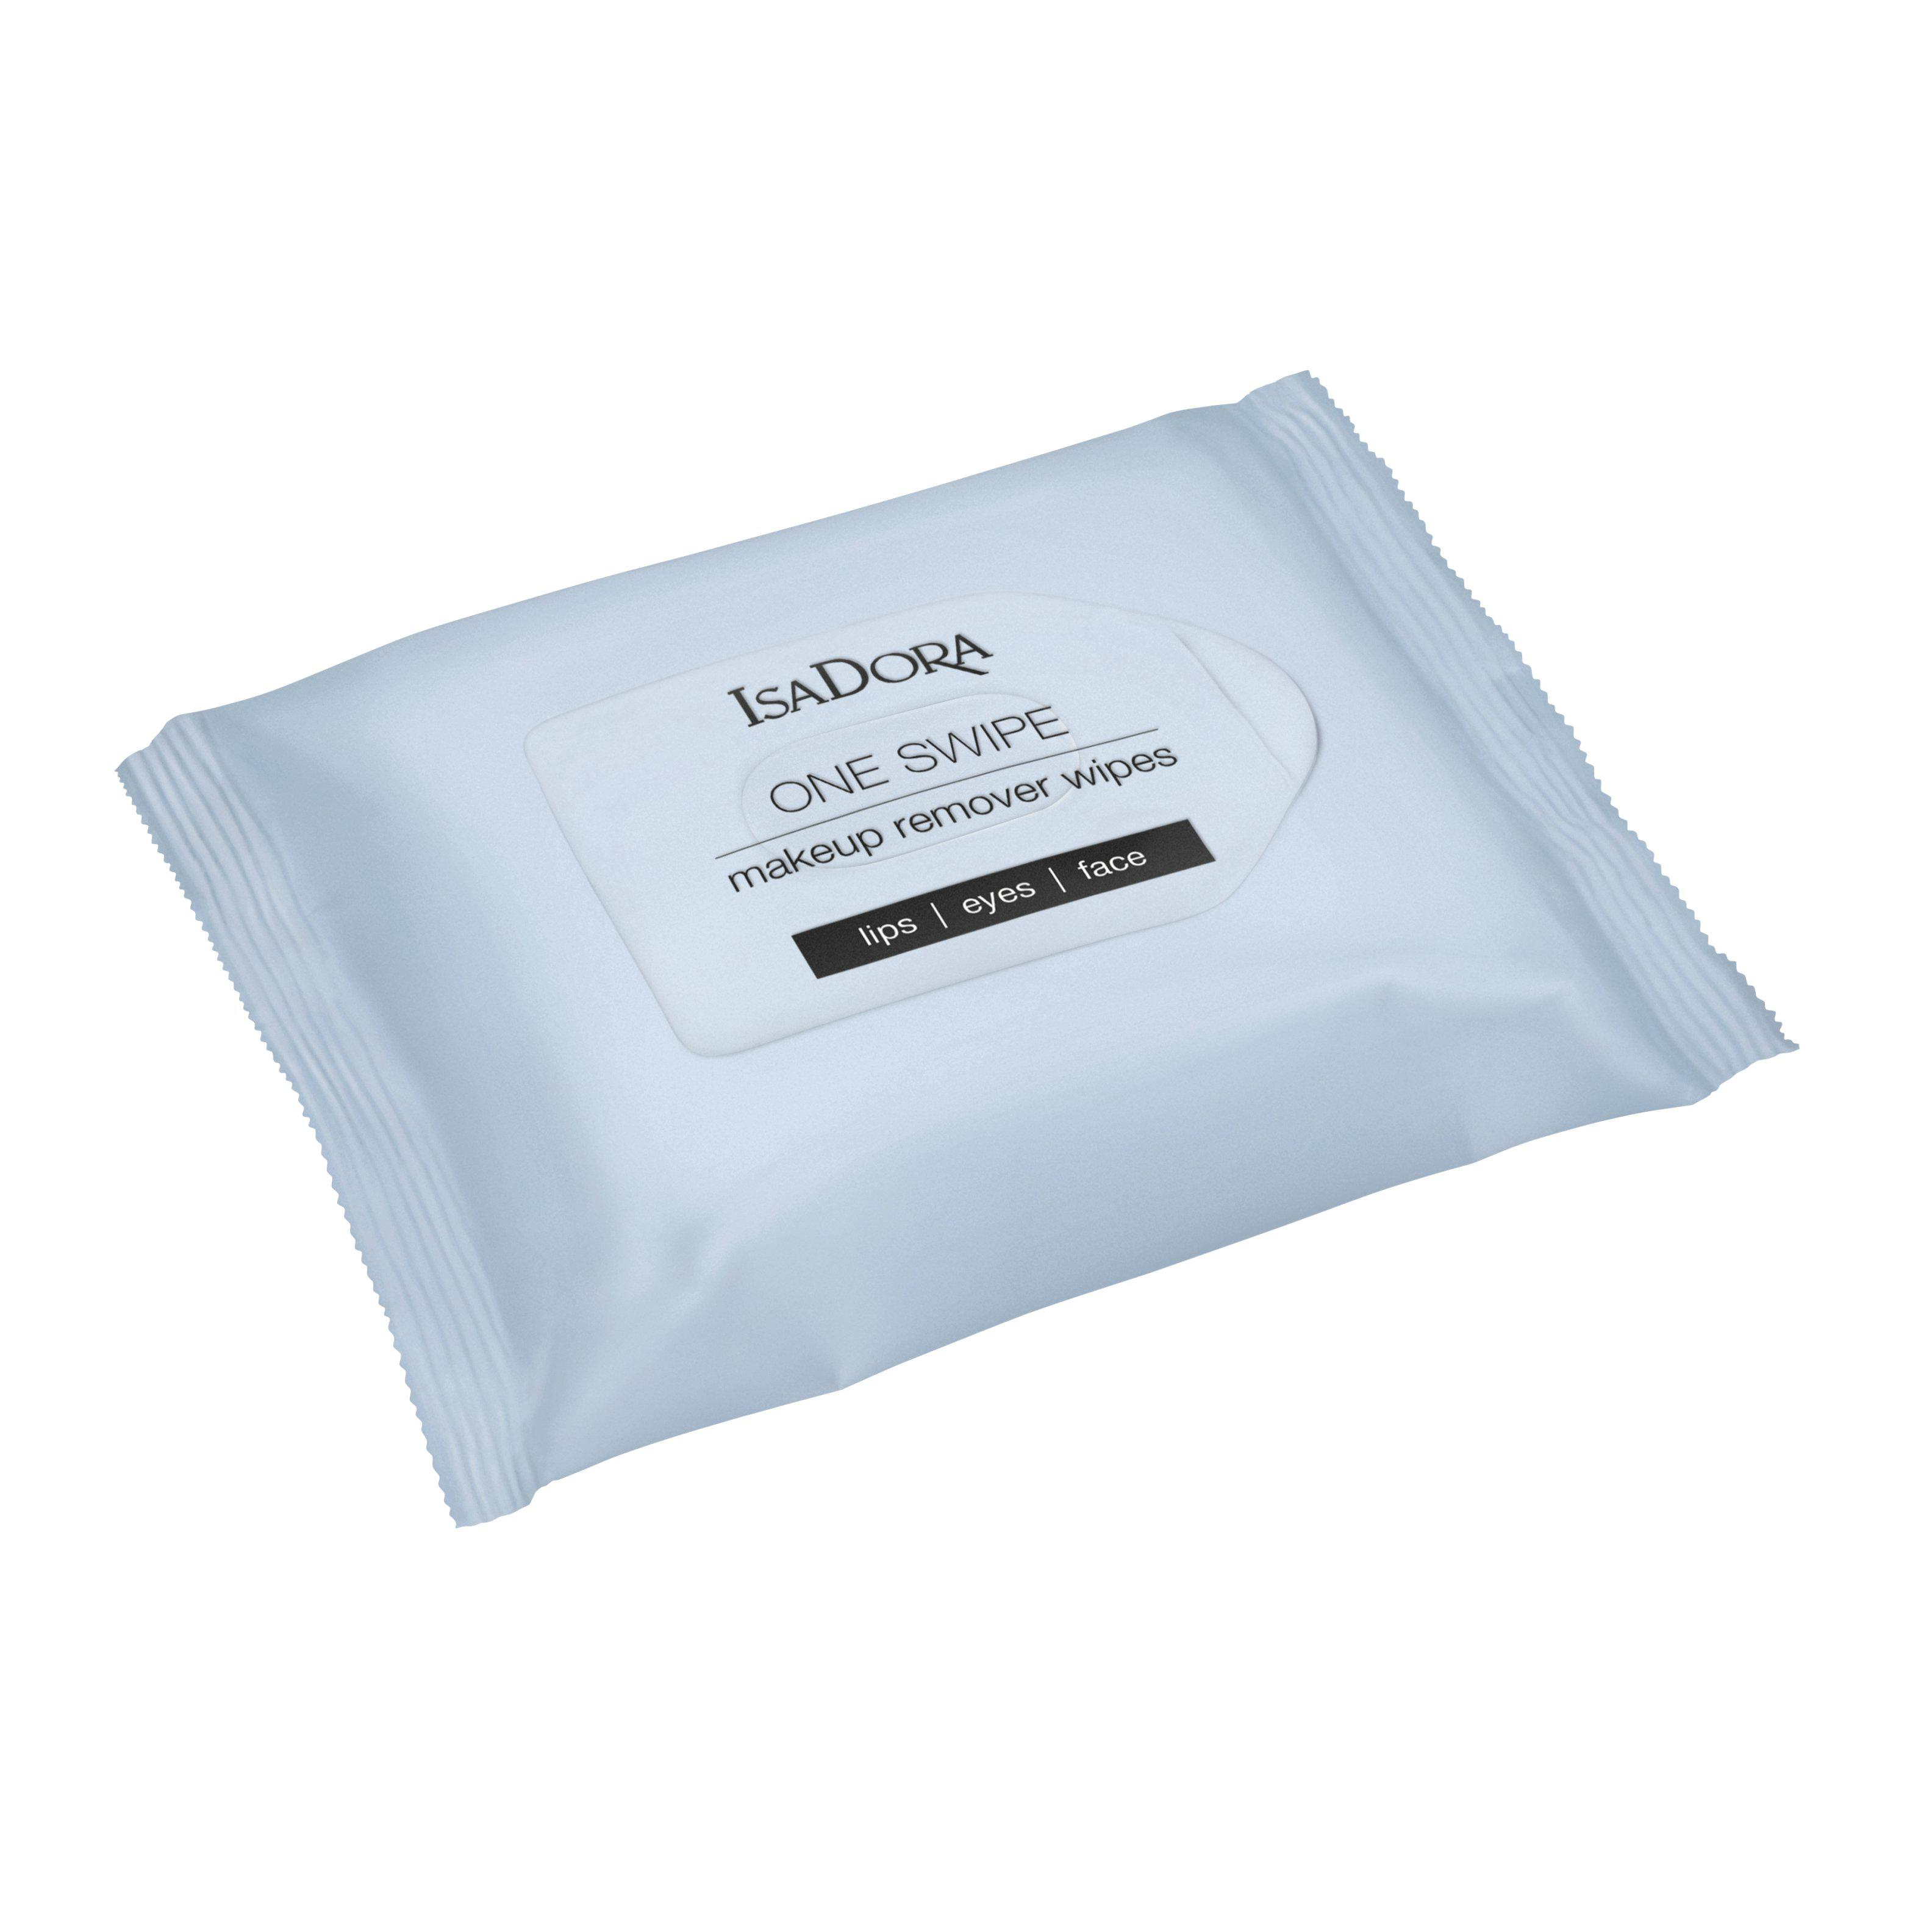 One Swipe Makeup Remover Wipes ISADORA